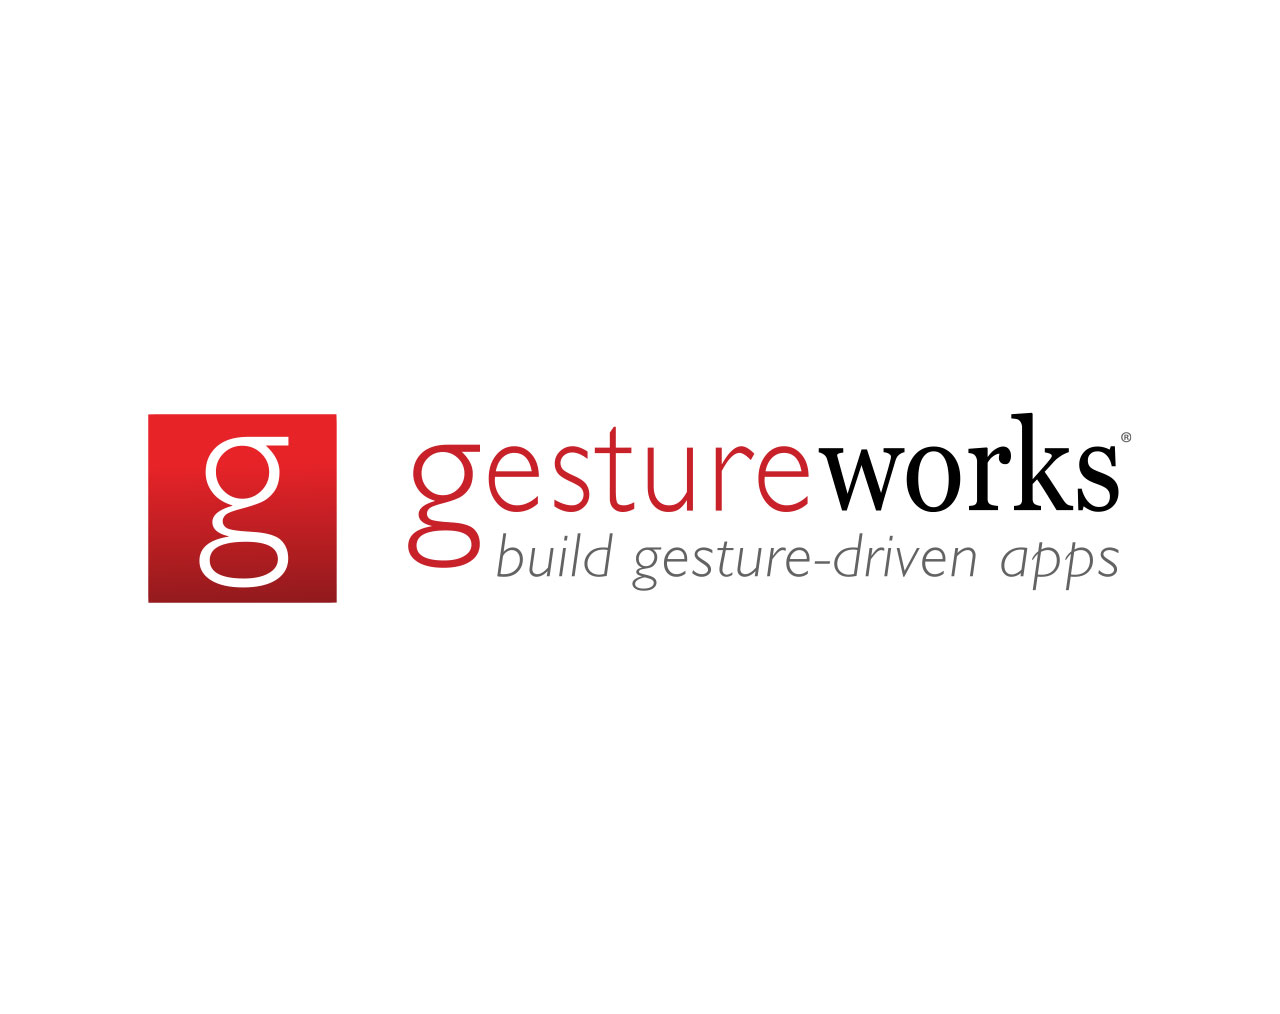 GestureWorks 3 Release Next Week: Good News for Flash Developers